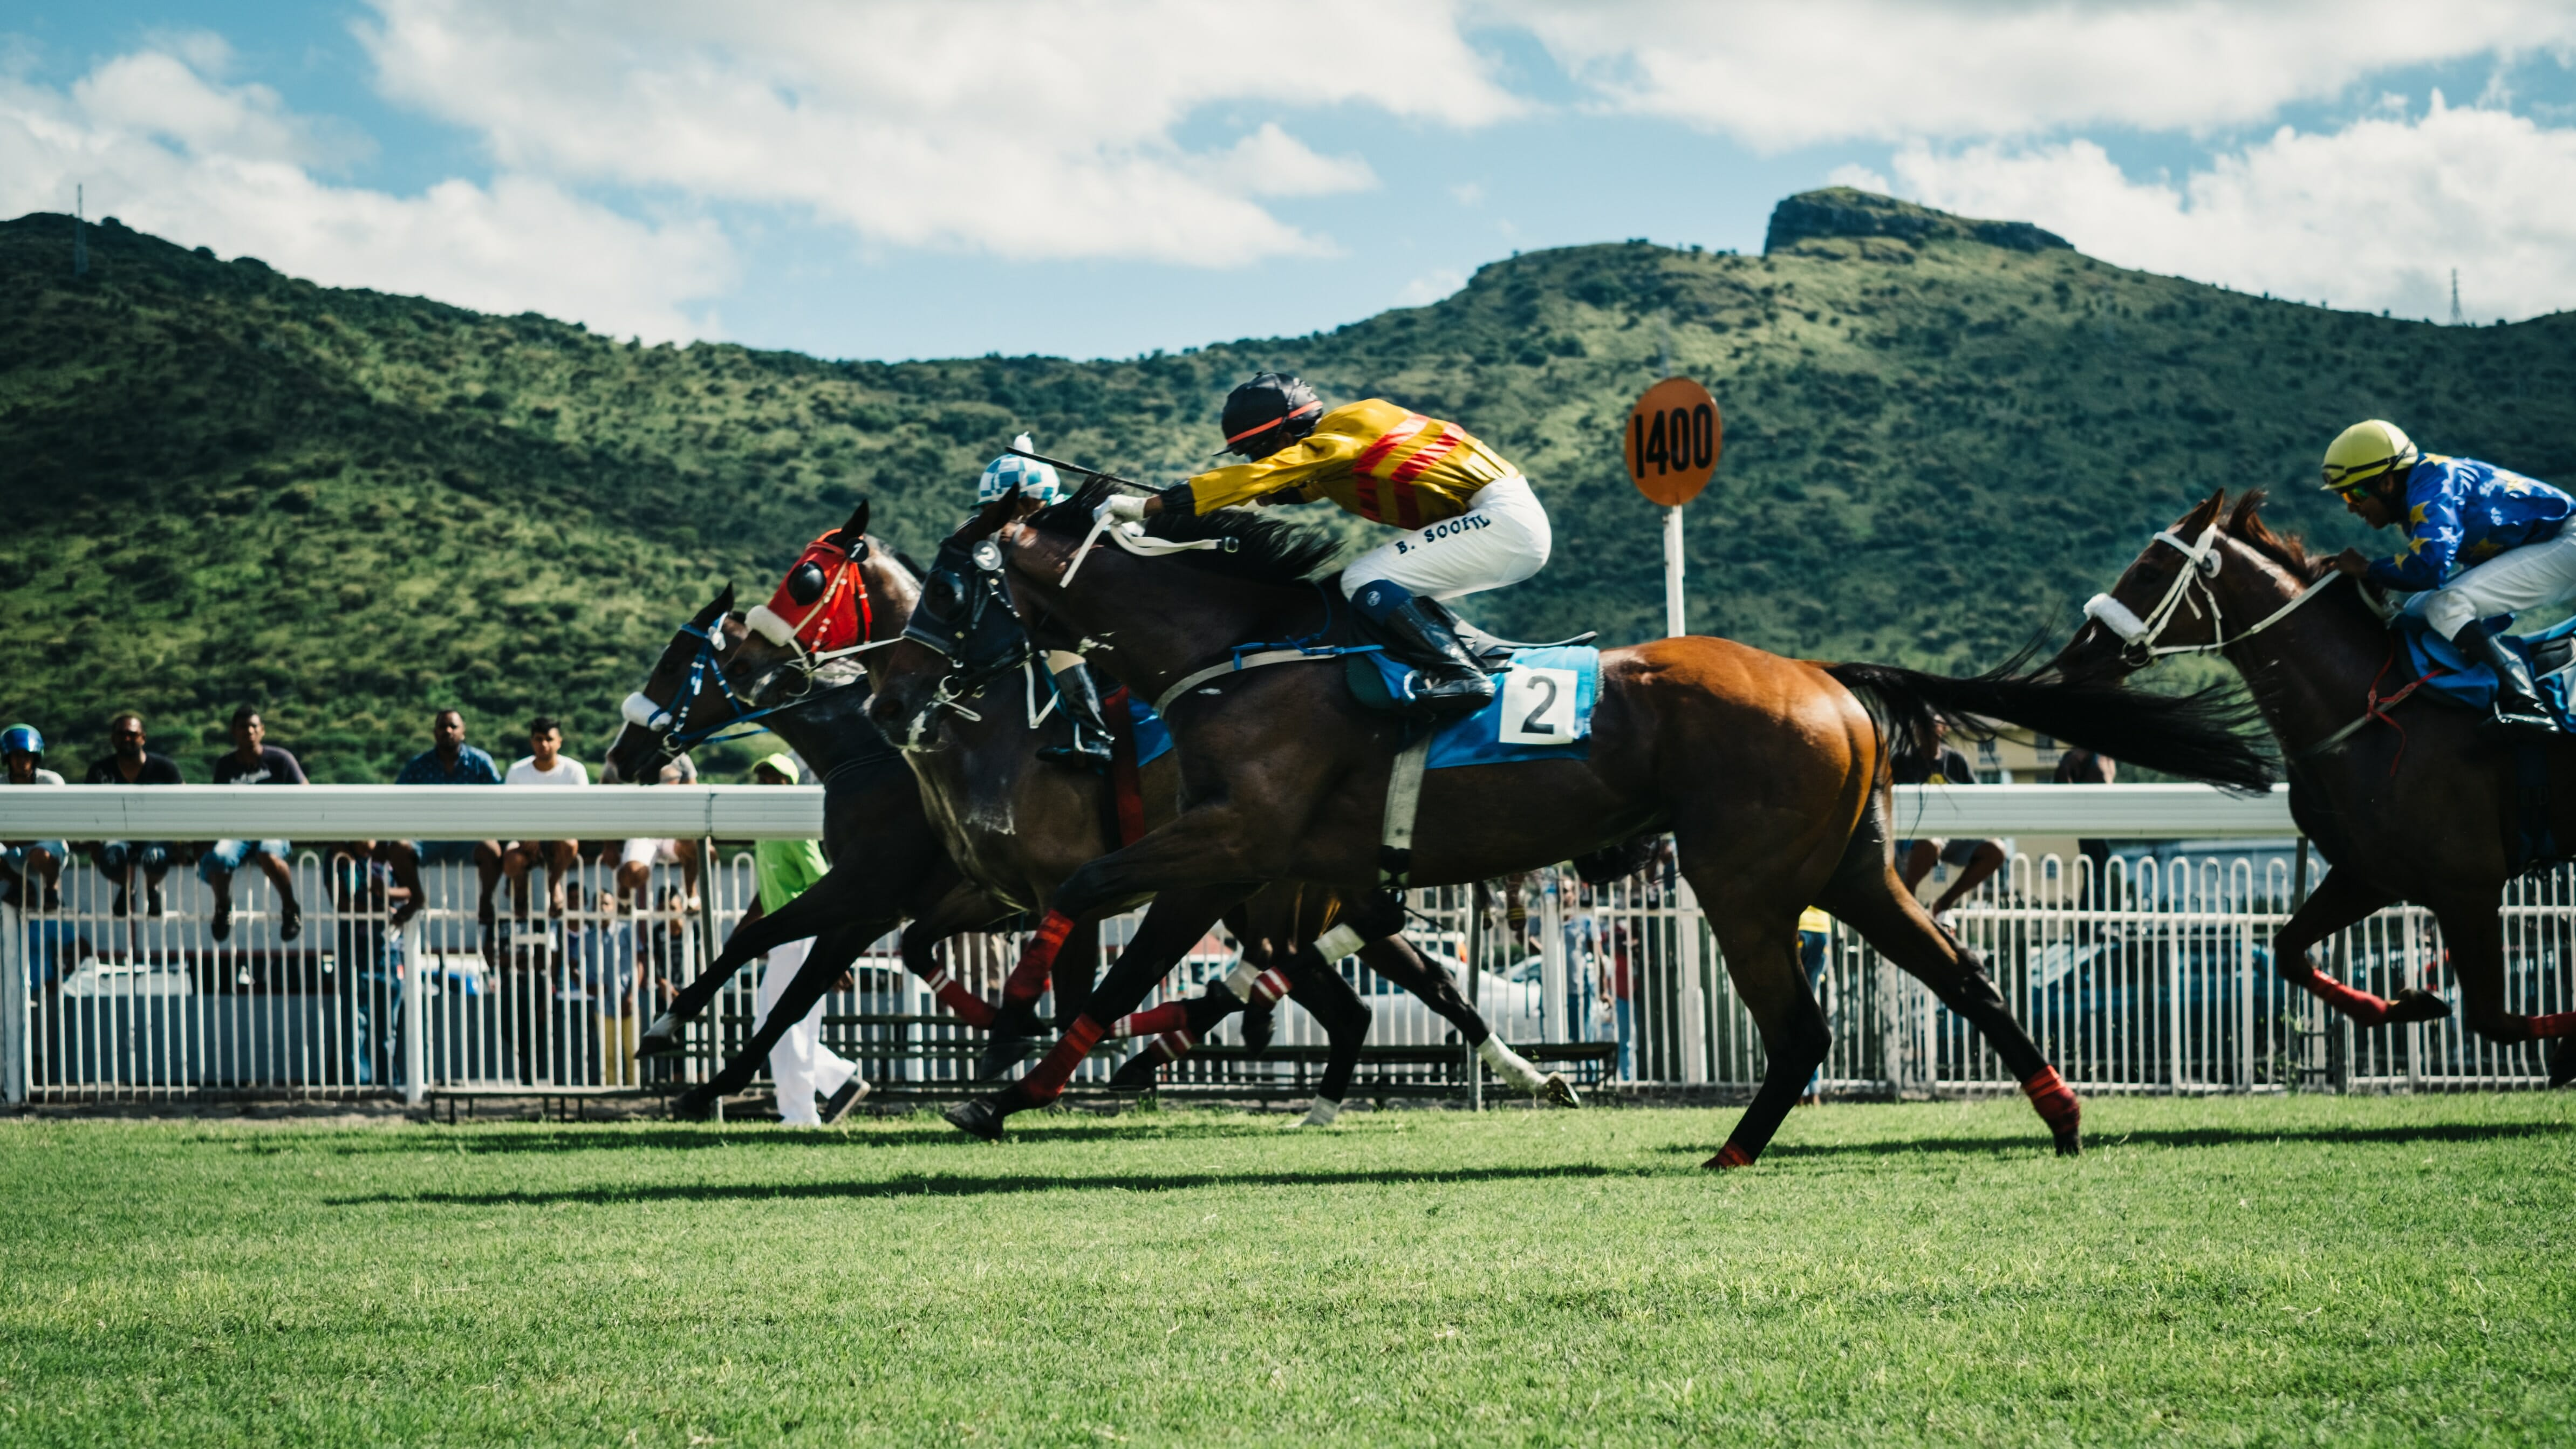 Workload Modeling - Preparing for Large Events like the Melbourne Cup